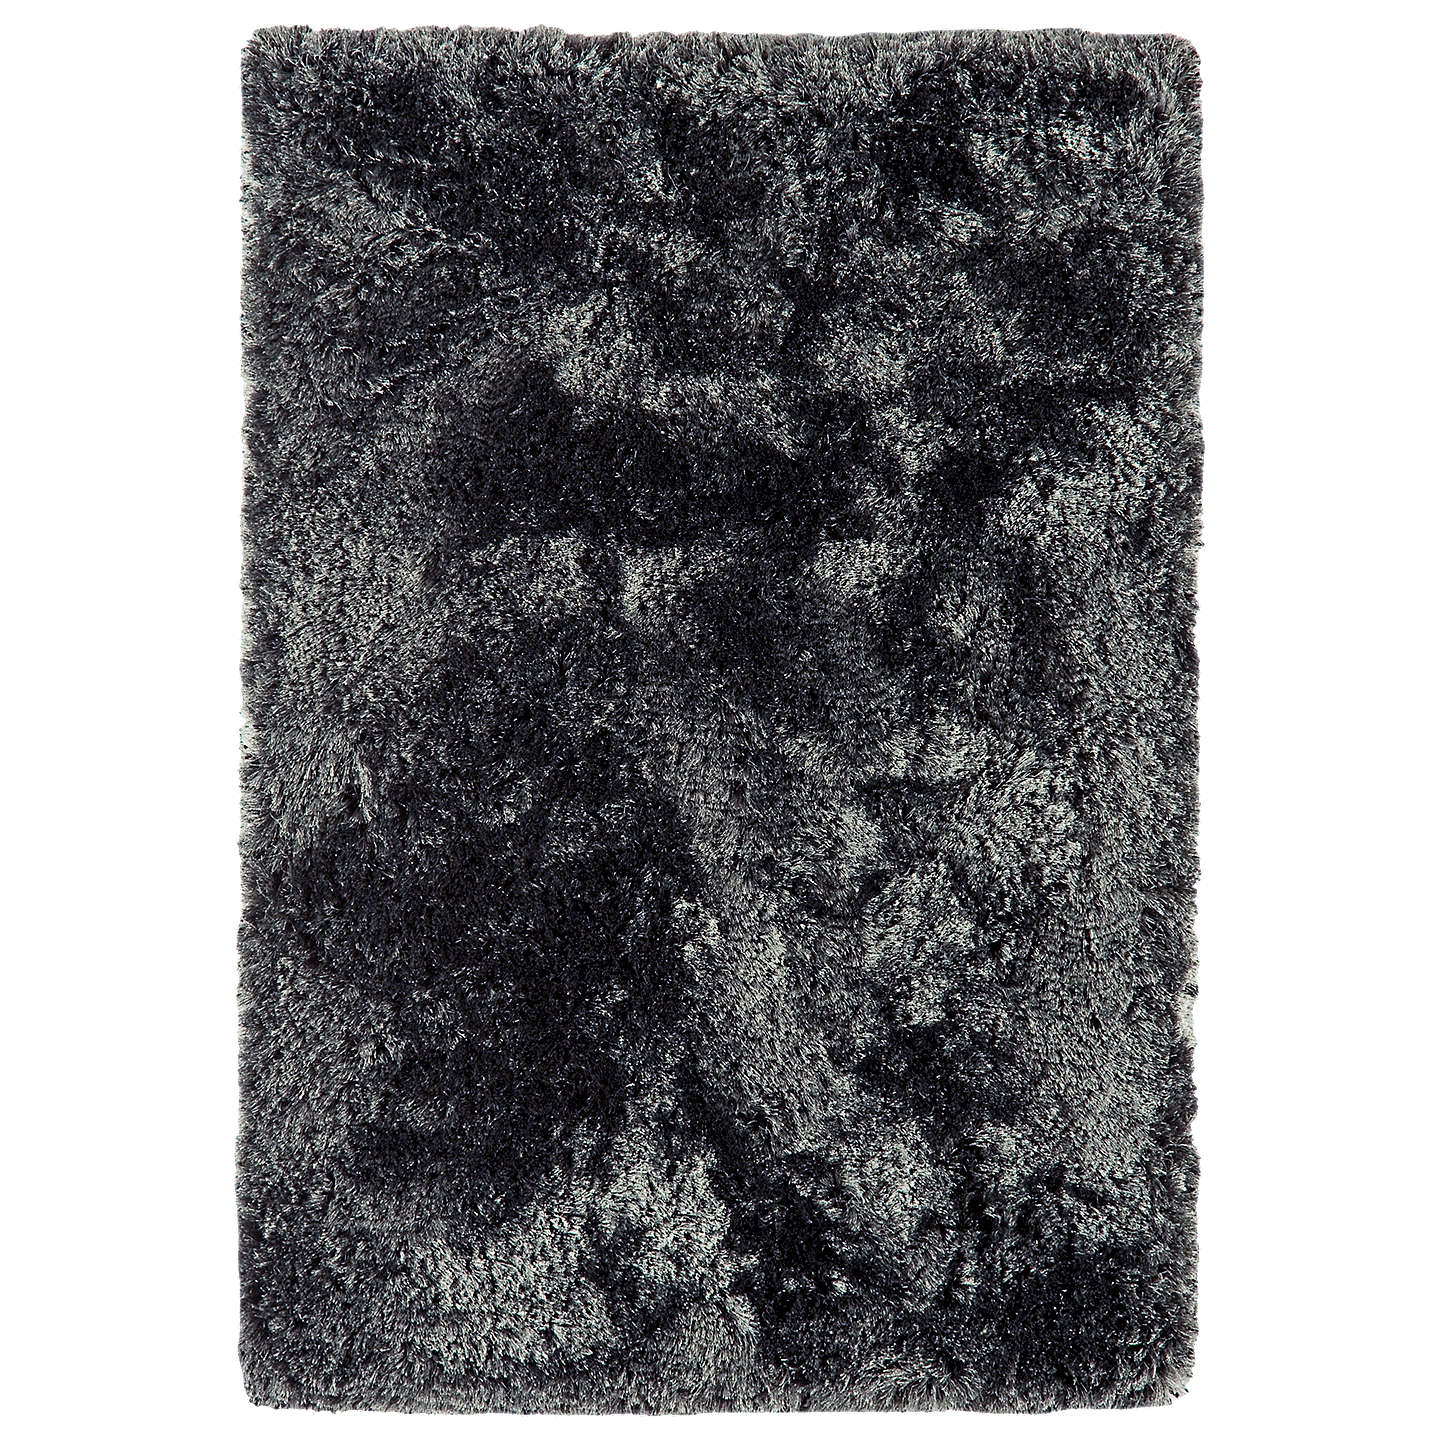 create yourself be to a of very turn home plush made bring pin shag shaggy space cozy and wool this soft handmade out for rug an the will ultra